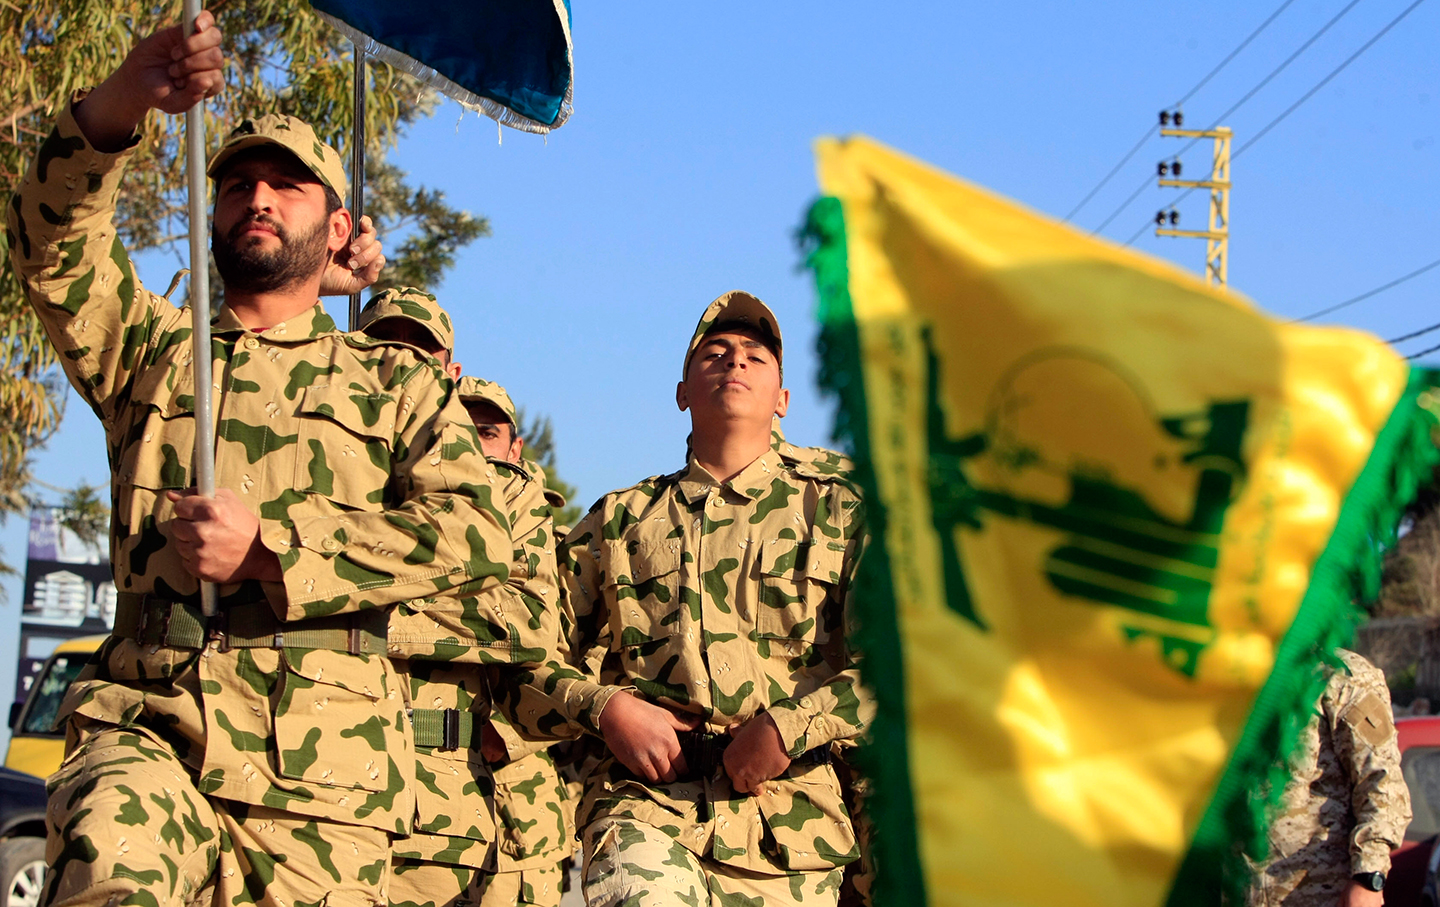 Hezbollah demonstration in Lebanon